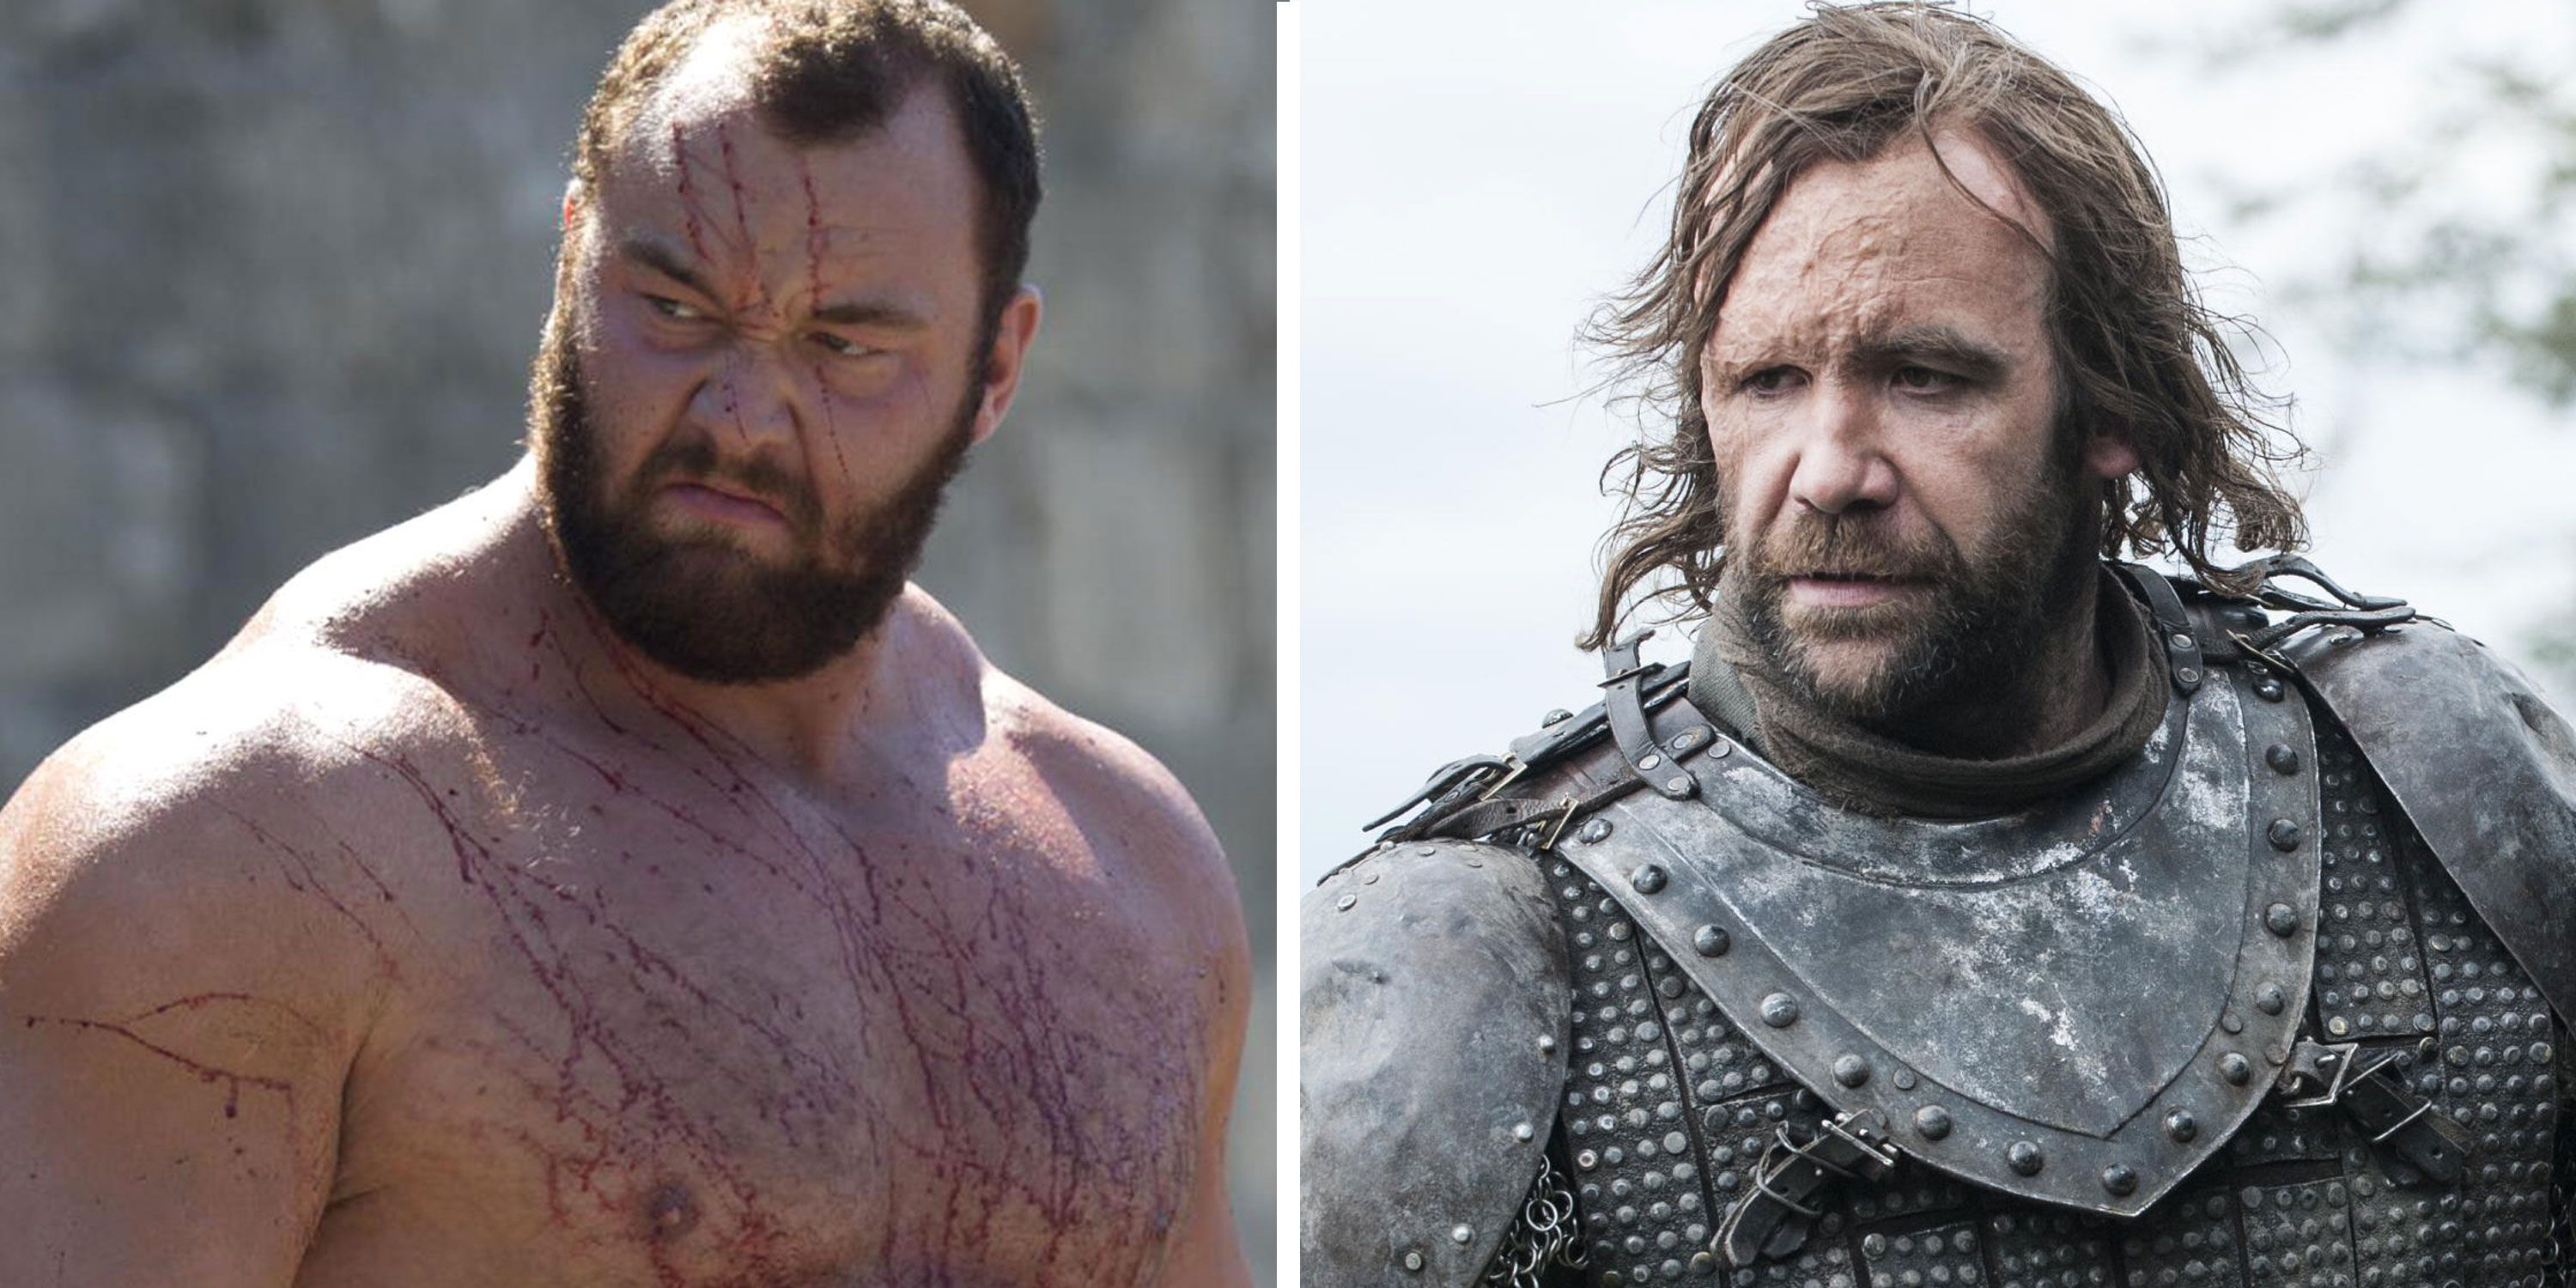 The Mountain and The Hound